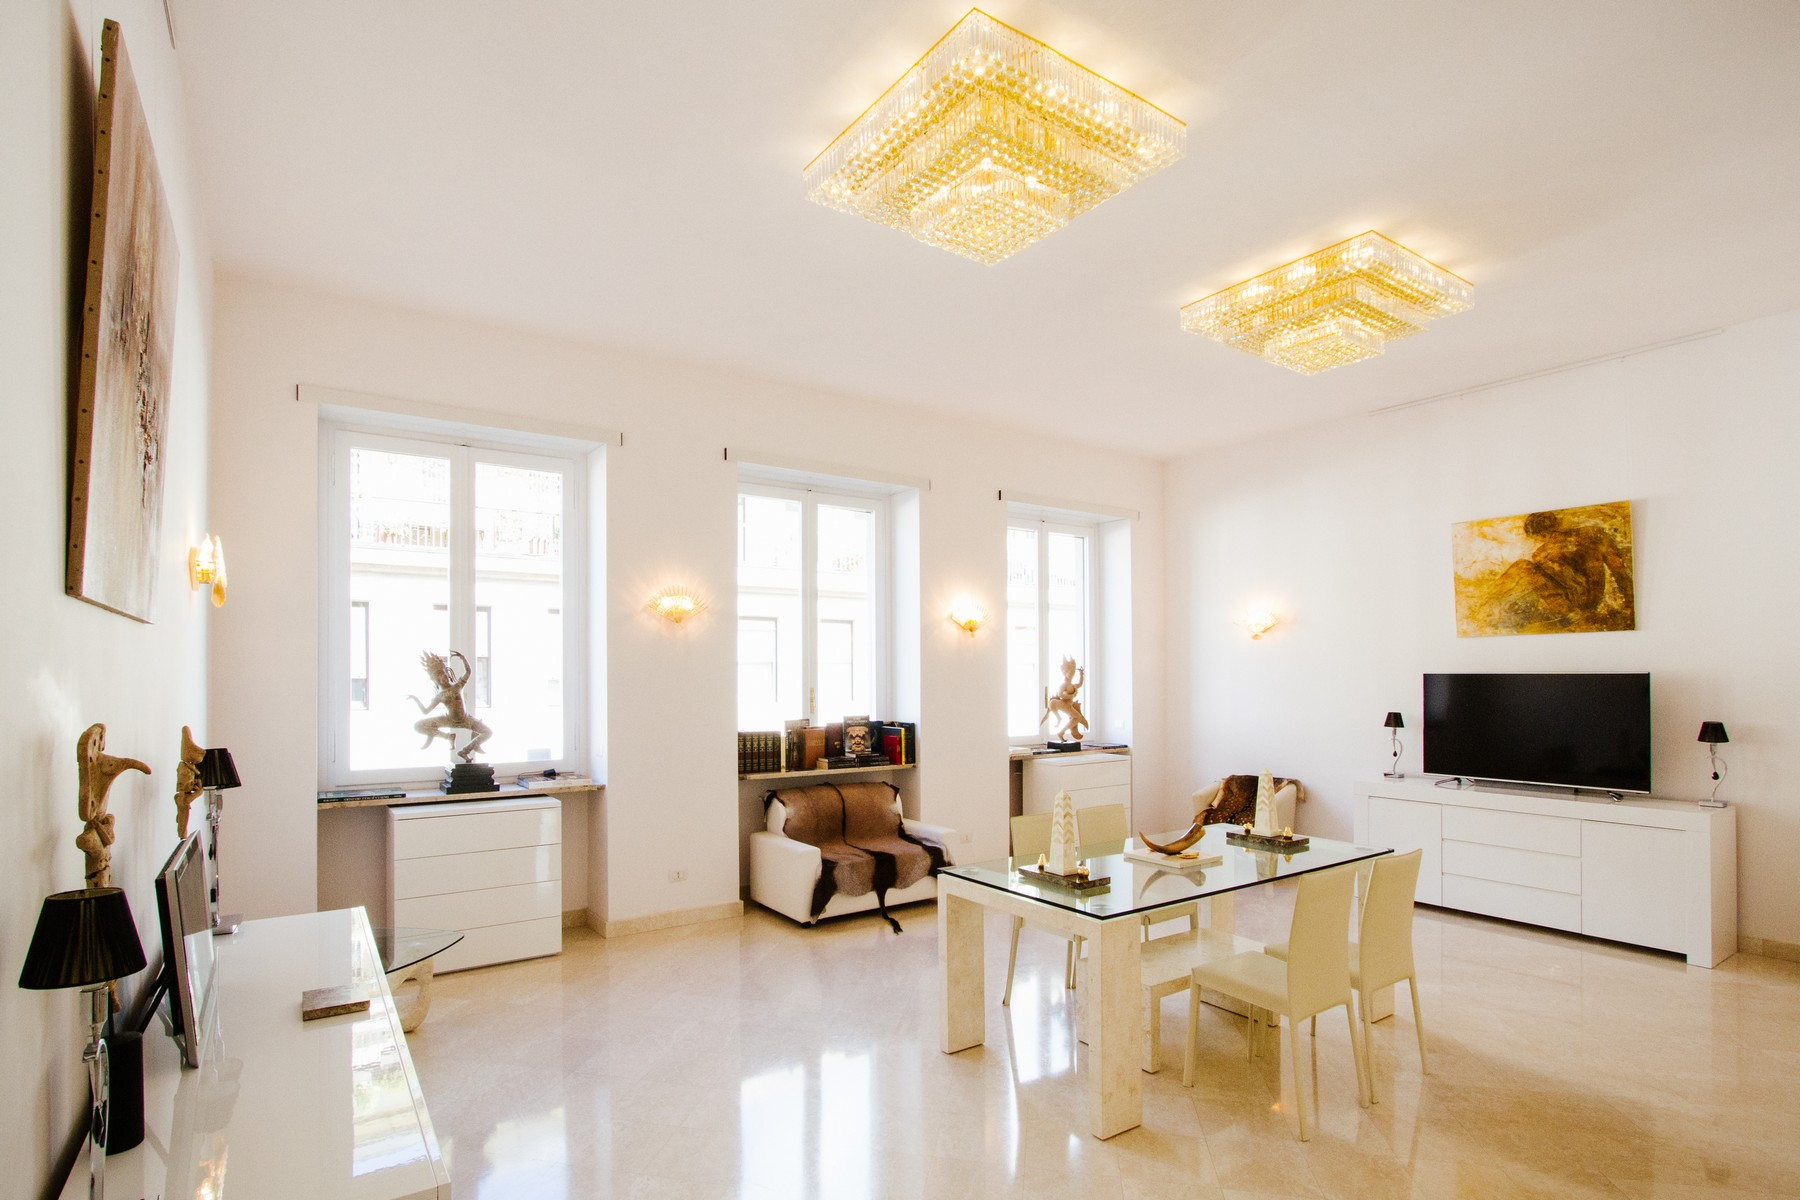 Additional photo for property listing at Luxury apartment in Via Roma  Turin, Turin 10121 Italy